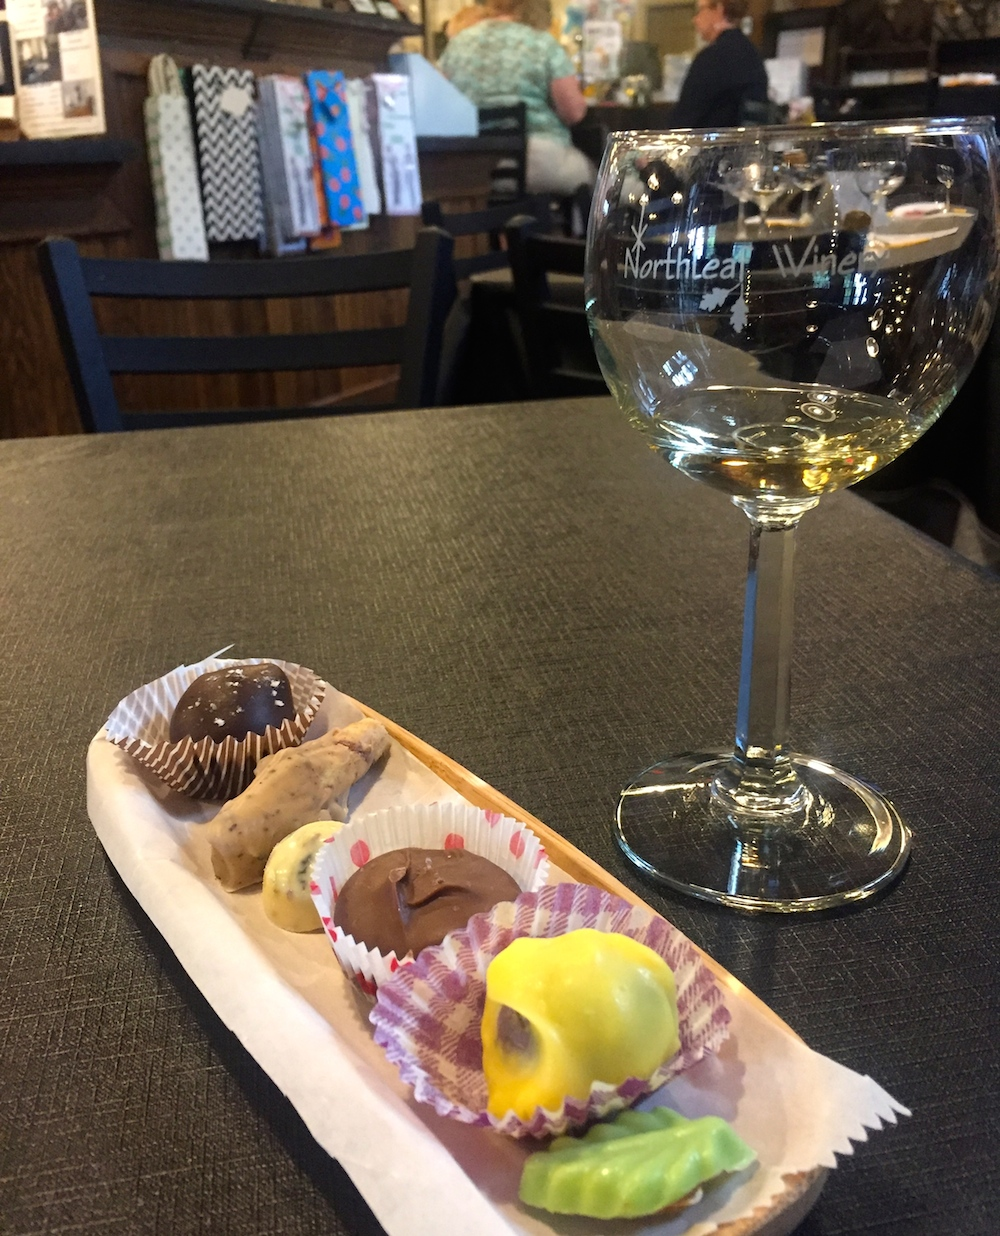 Wine and chocolate pairing at Northleaf Winery in Milton, Wisconsin